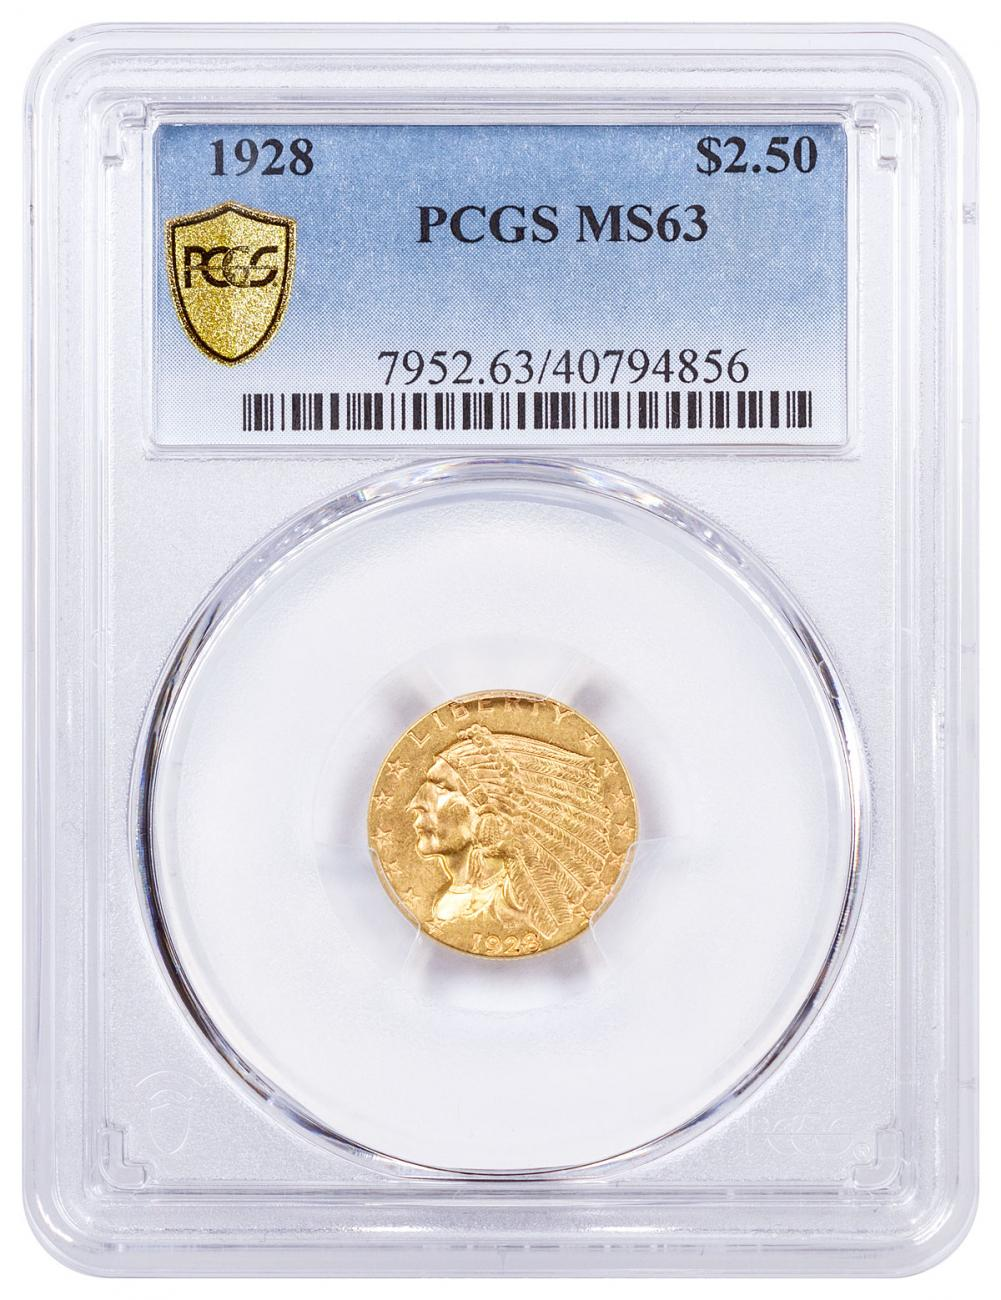 1928 Indian Head $2.50 Gold Quarter Eagle PCGS MS63